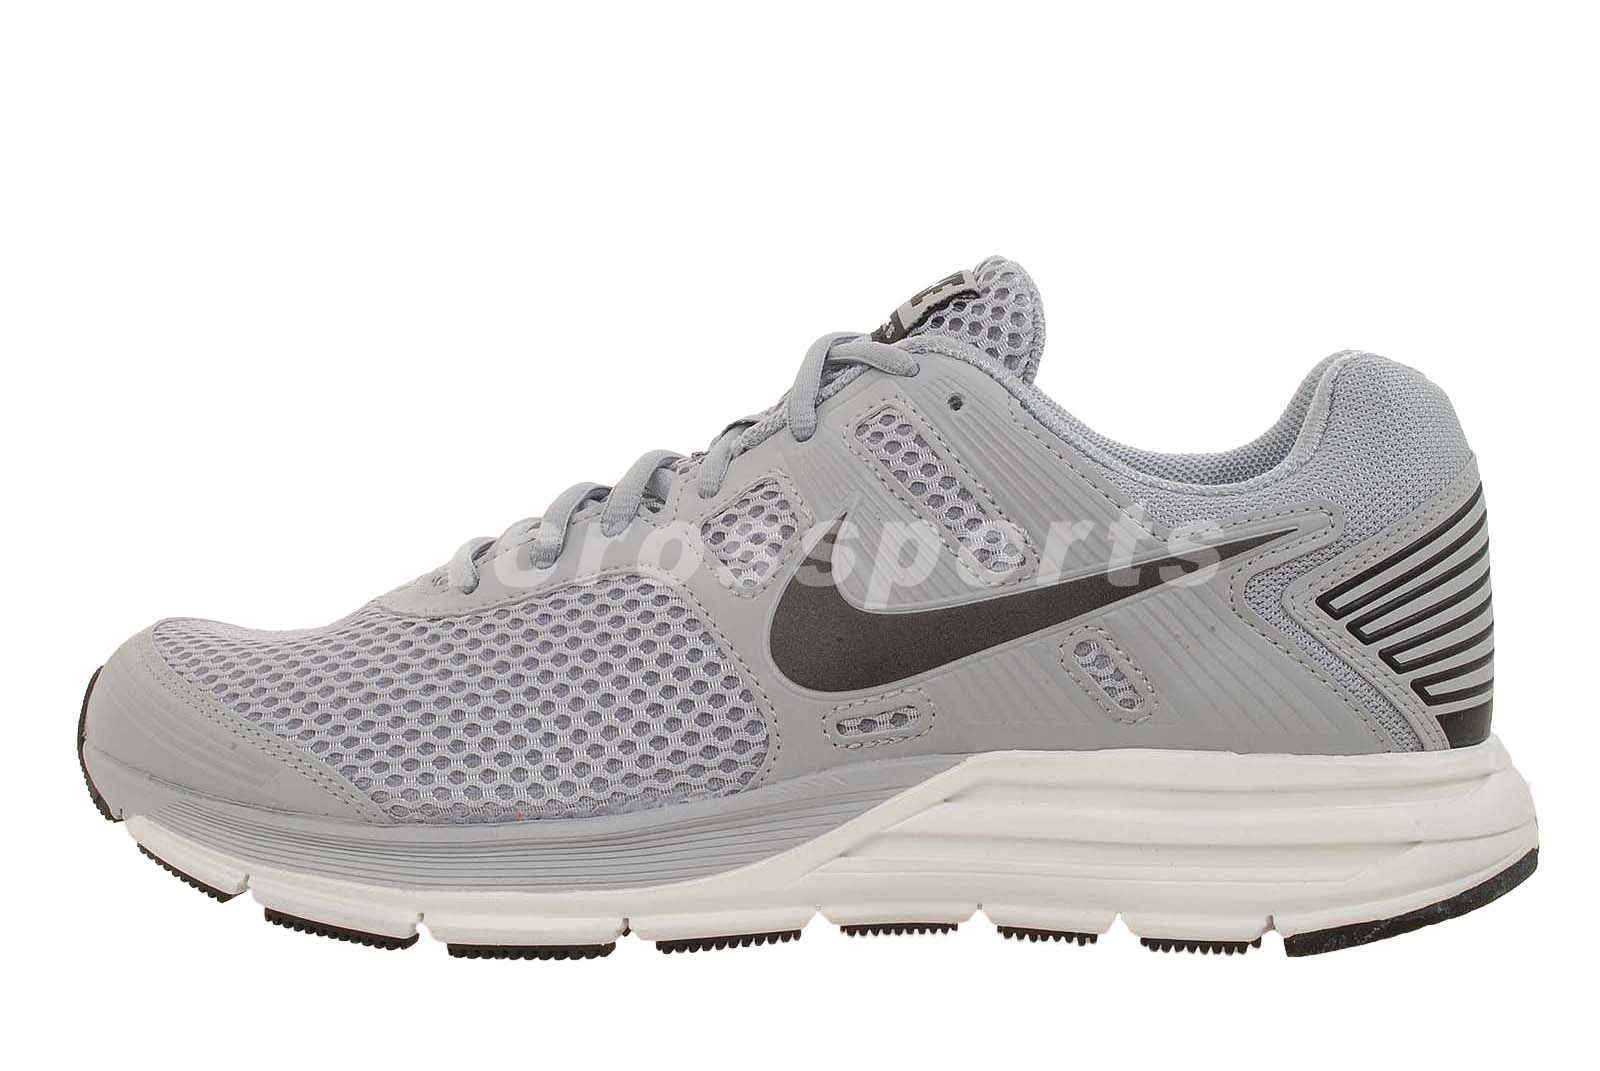 nike zoom structure 16 wolf grey white mens running shoes